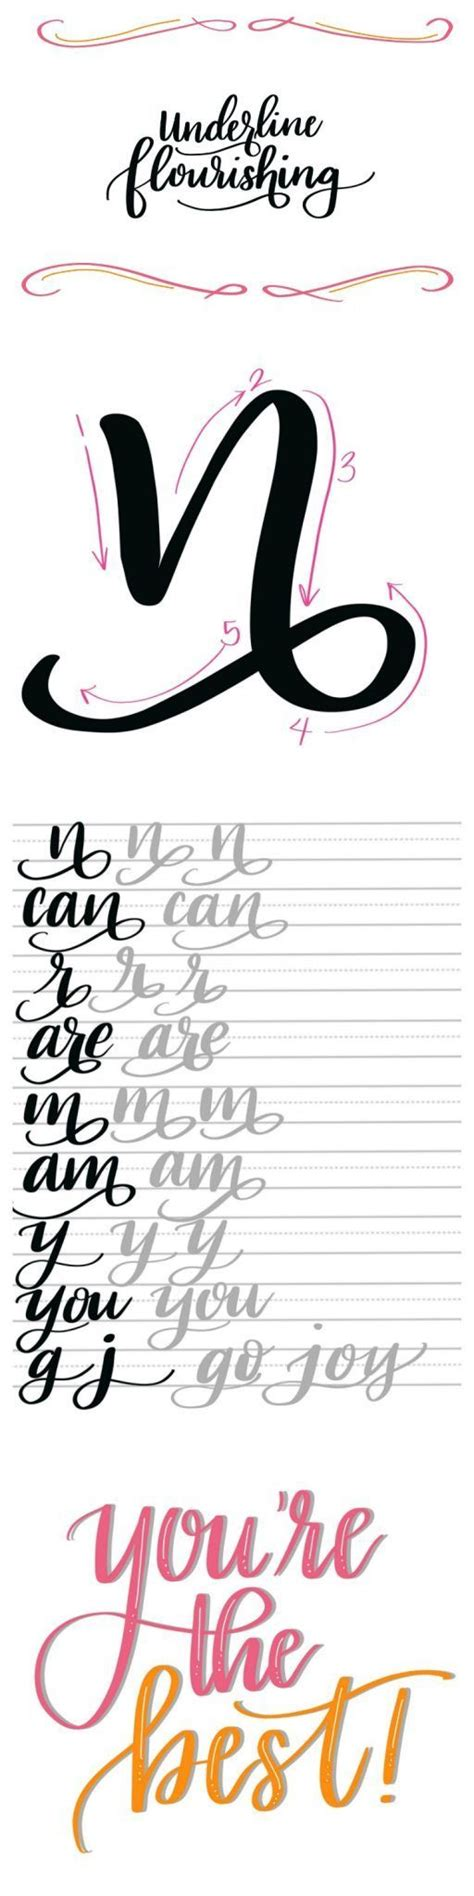 tattoo font underline 25 unique fonts for tattoos ideas on pinterest tattoo